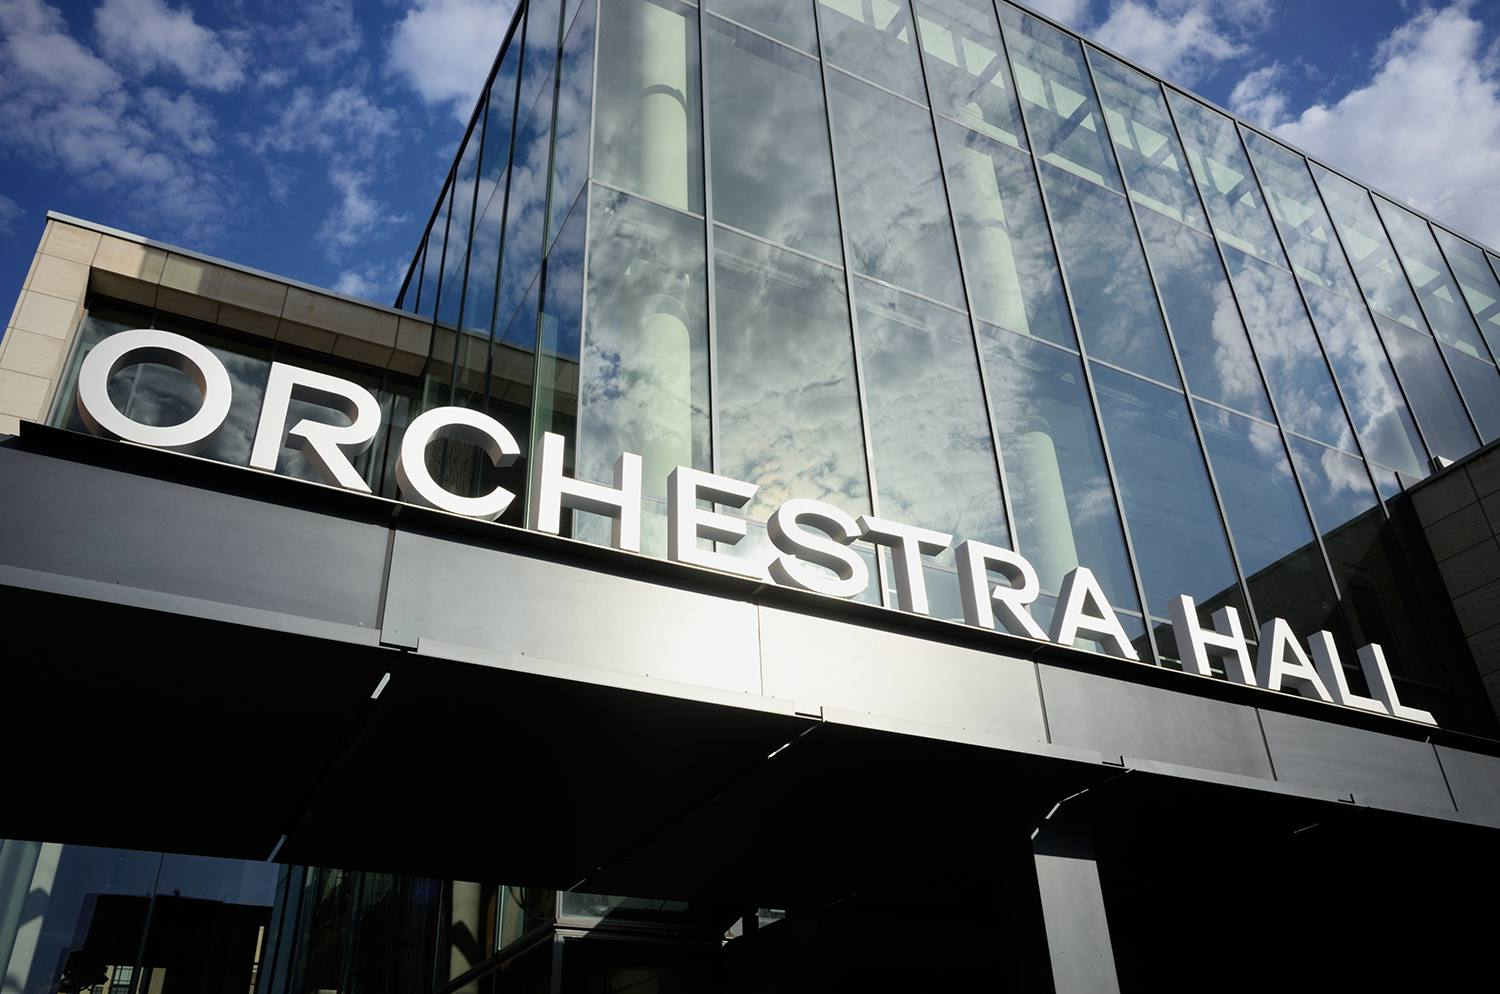 Minneapolis Orchestra Hall sign